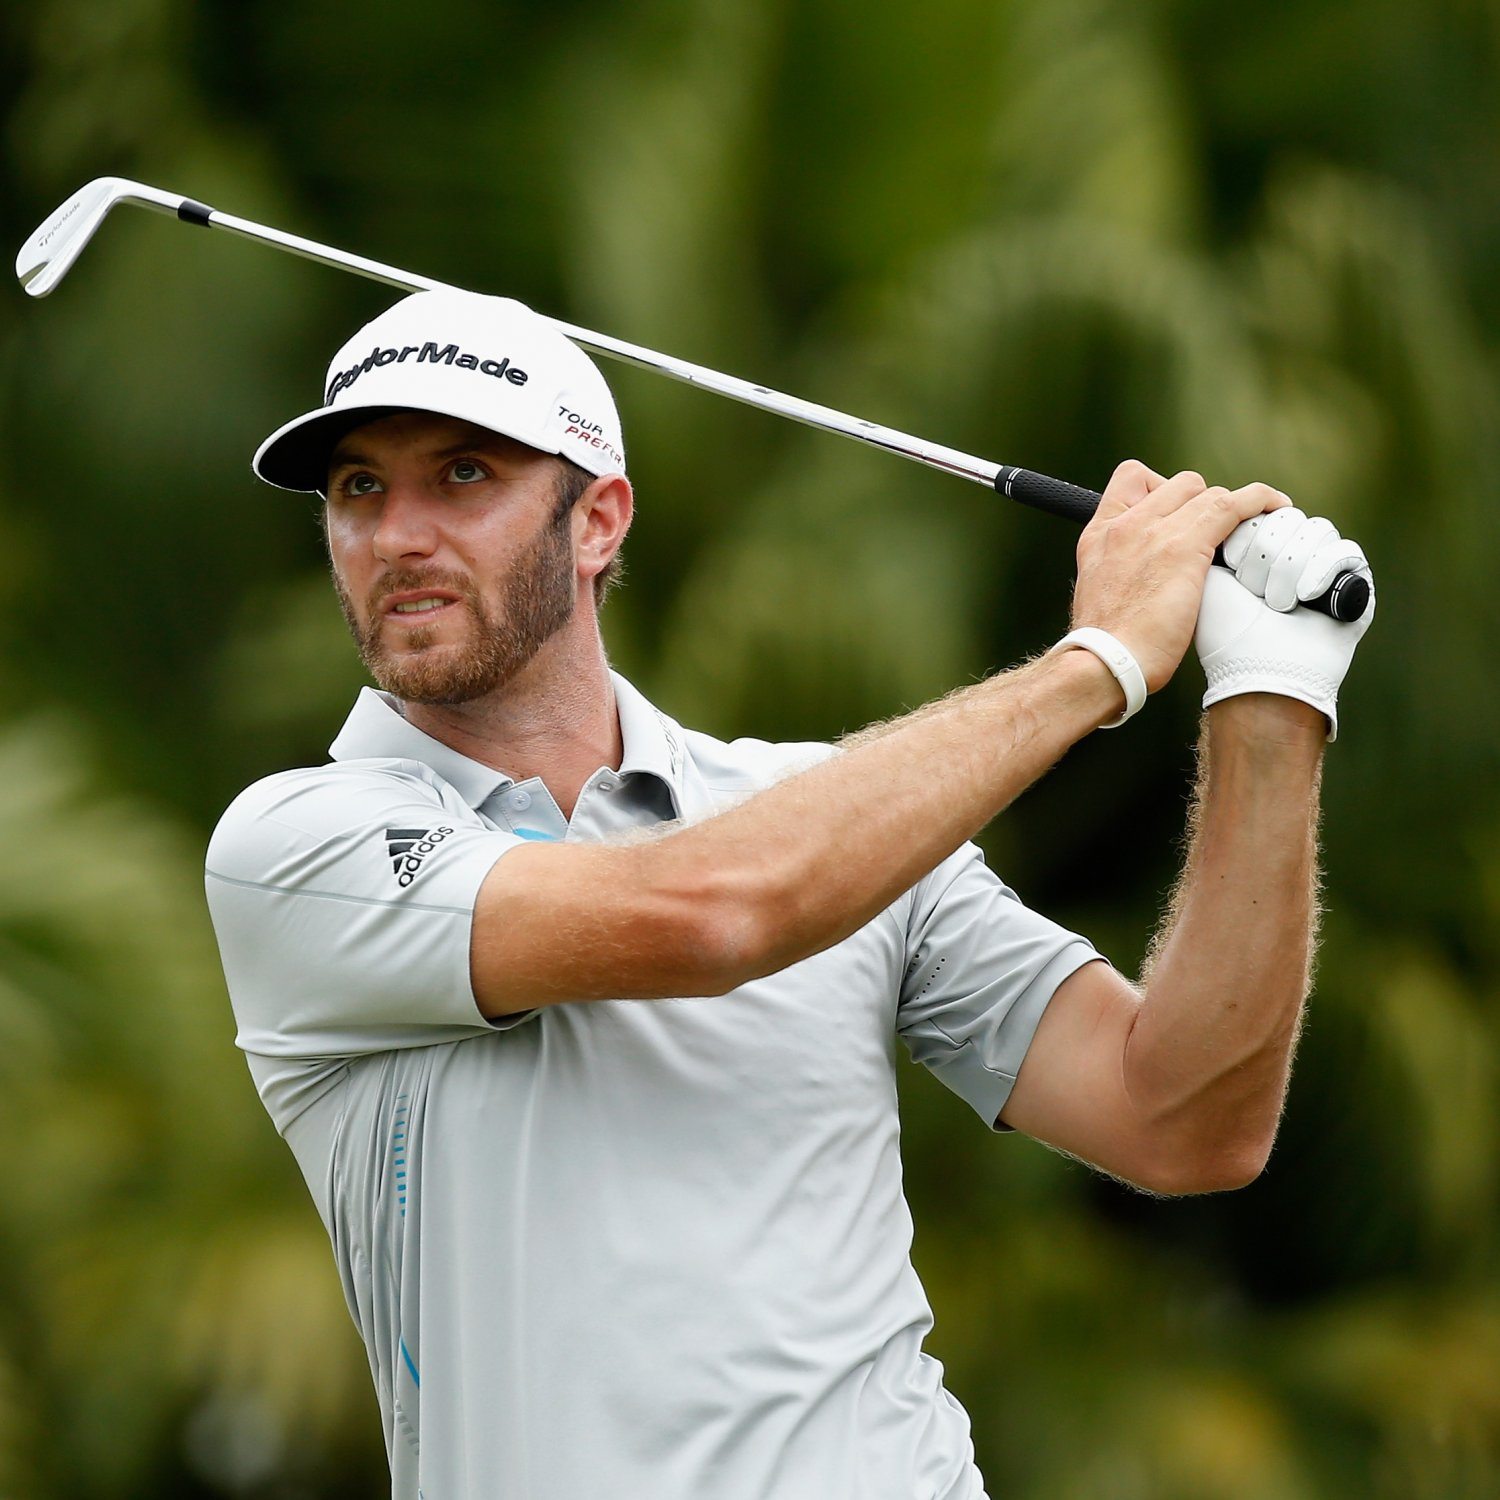 wgc cadillac championship 2014 leaderboard day 3 scores results and. Cars Review. Best American Auto & Cars Review